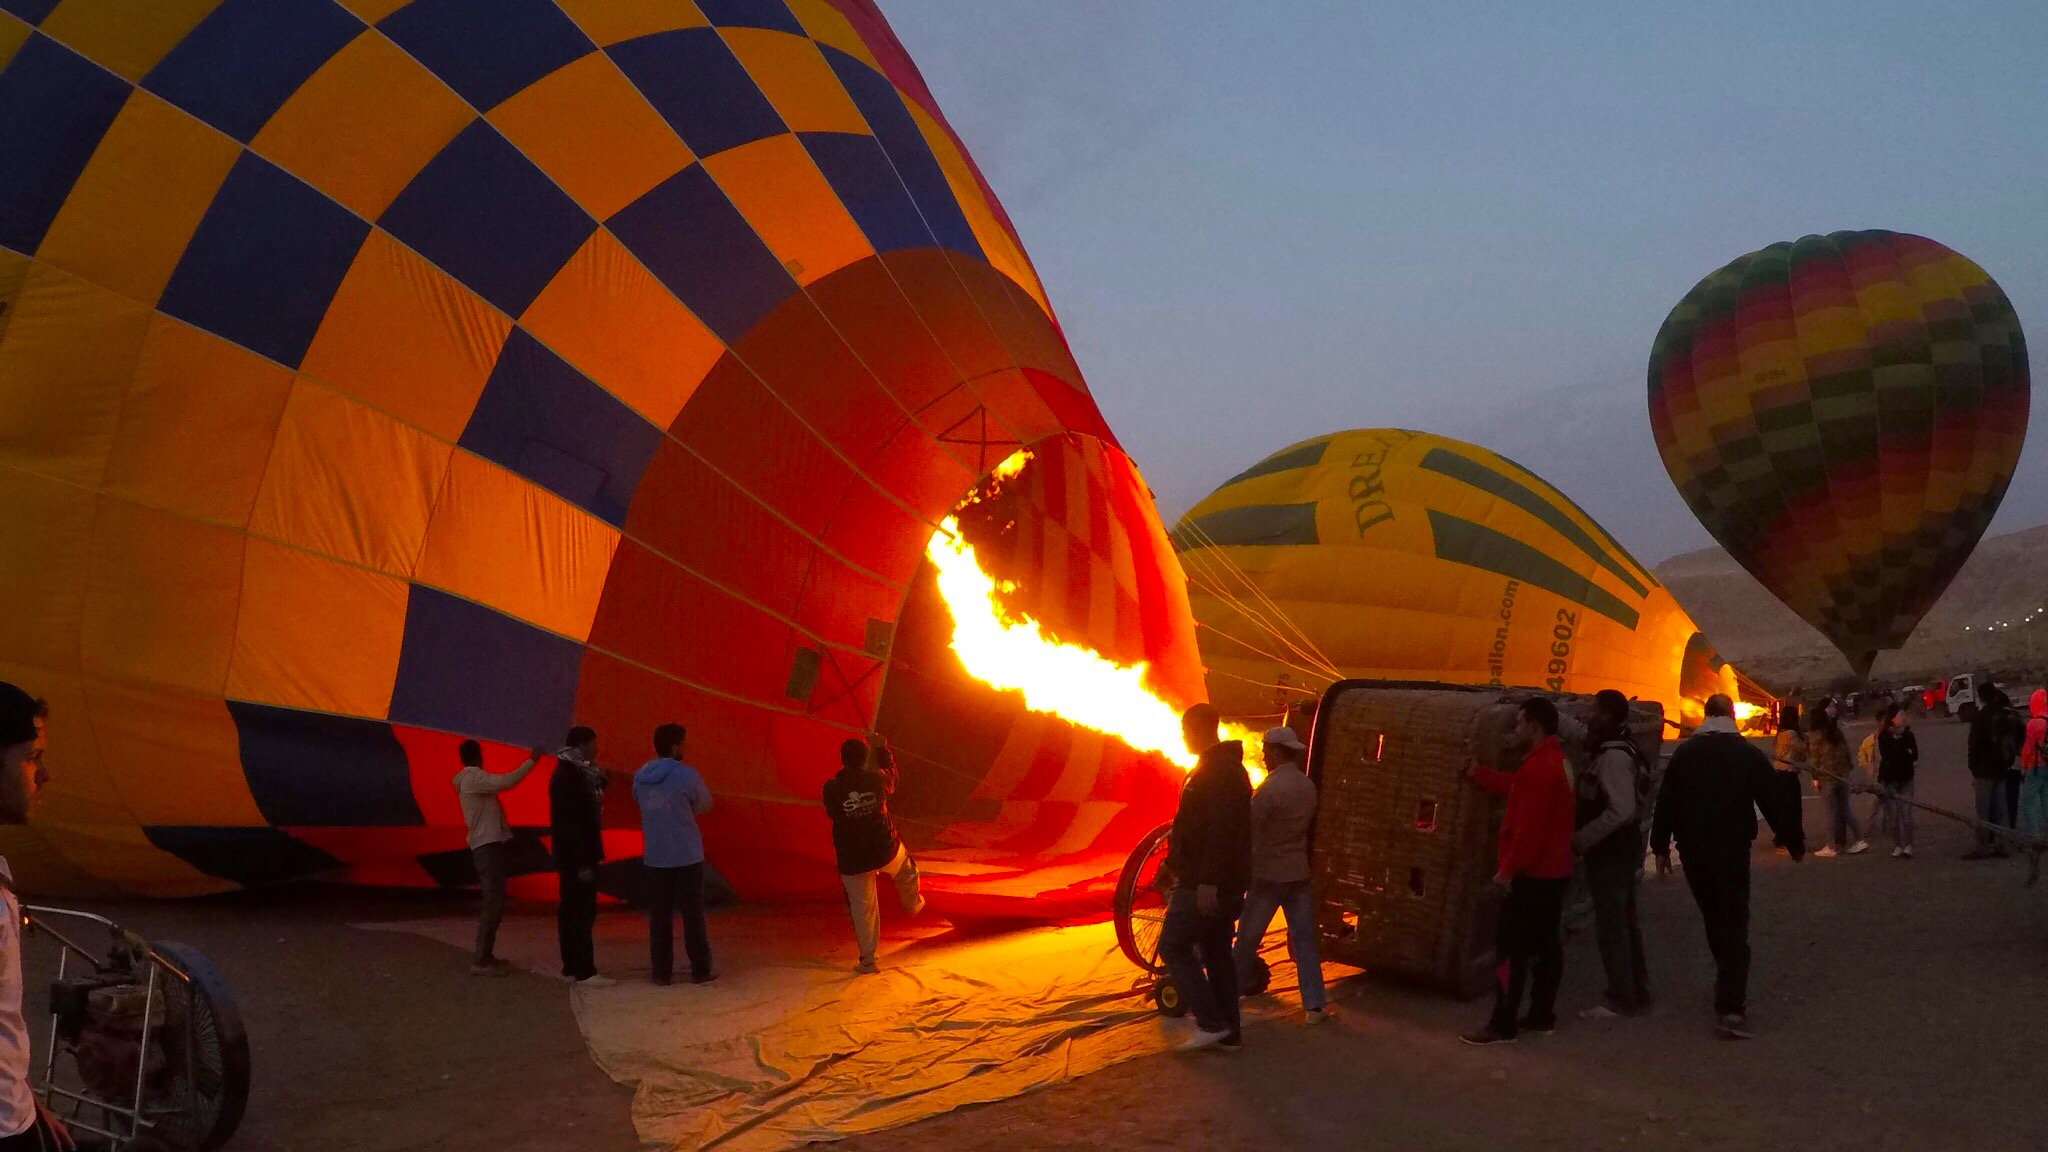 Hot Air Balloon, Luxor, Egypt